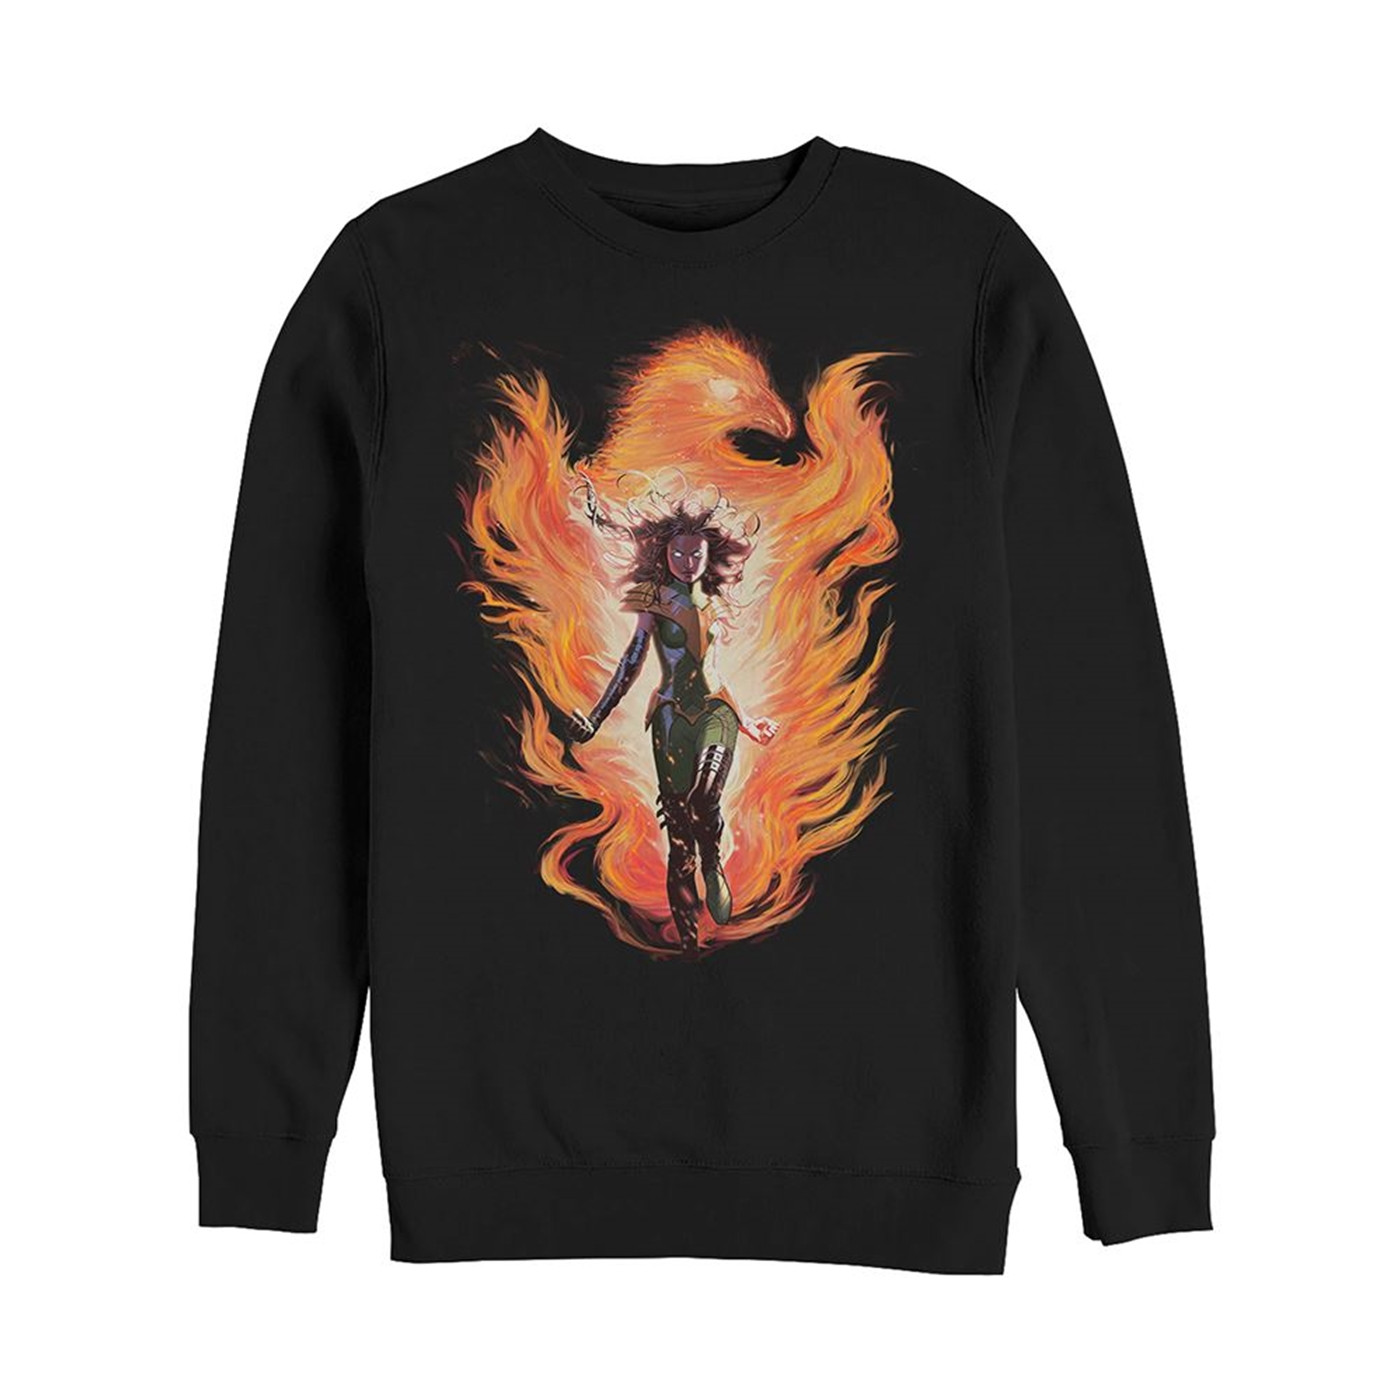 X-Men The Phoenix Sweatshirt